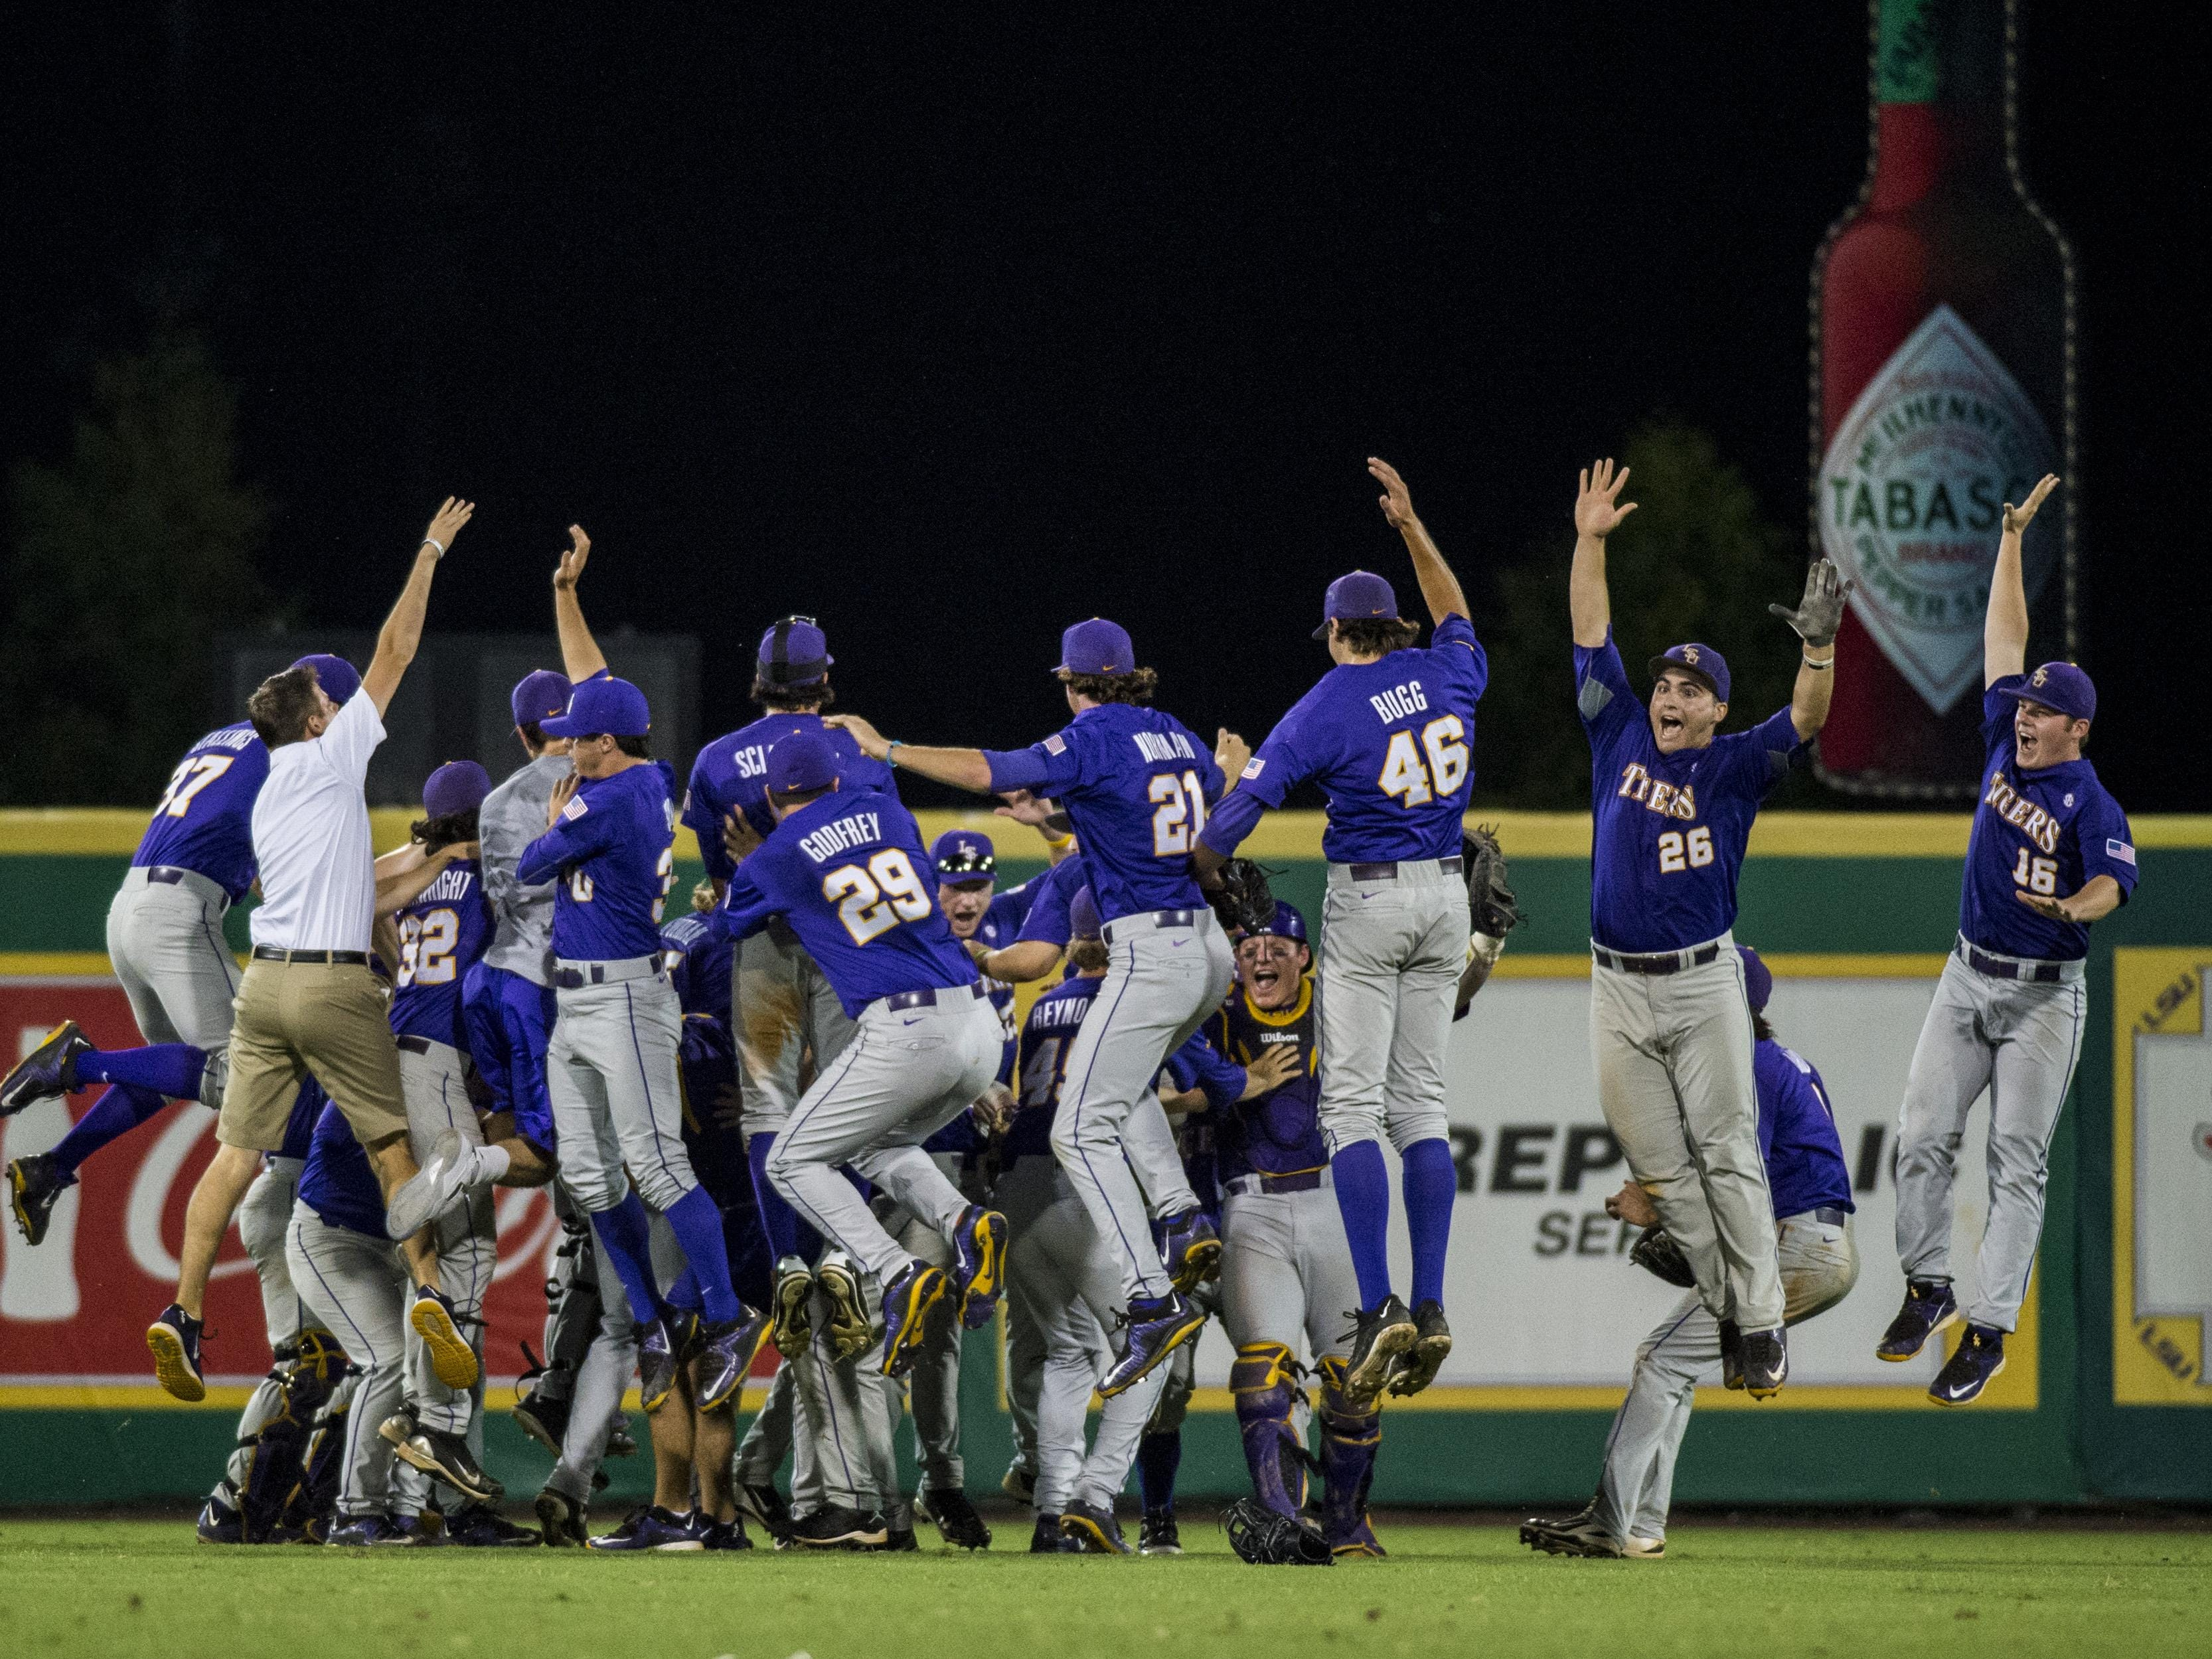 LSU players leap in celebration in the outfield following their 6-3 victory over the UL Ragin' Cajuns in an NCAA Super Regional game at Alex Box Stadium in Baton Rouge on Sunday.